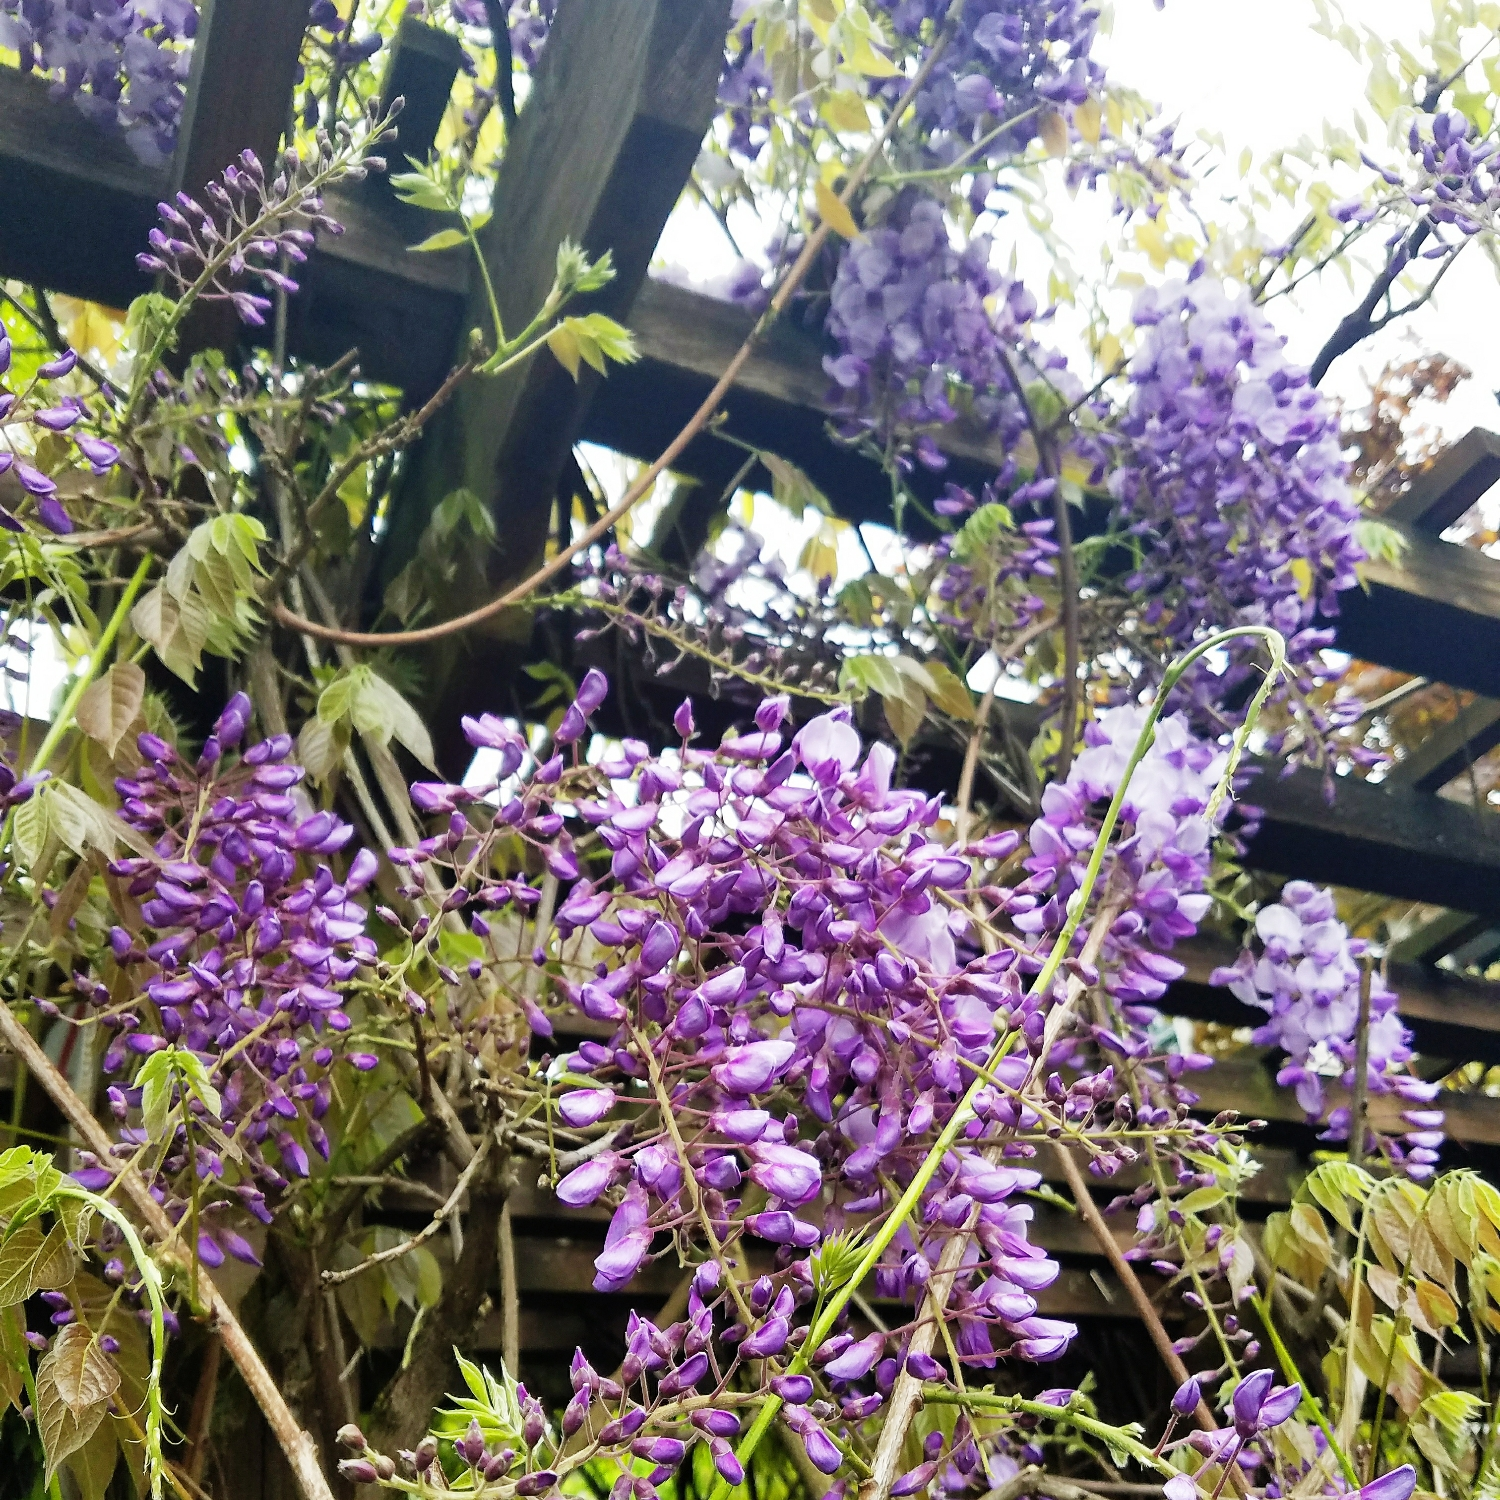 Lovely wisteria blooms trailing over the walkway to another building in our apartment complex